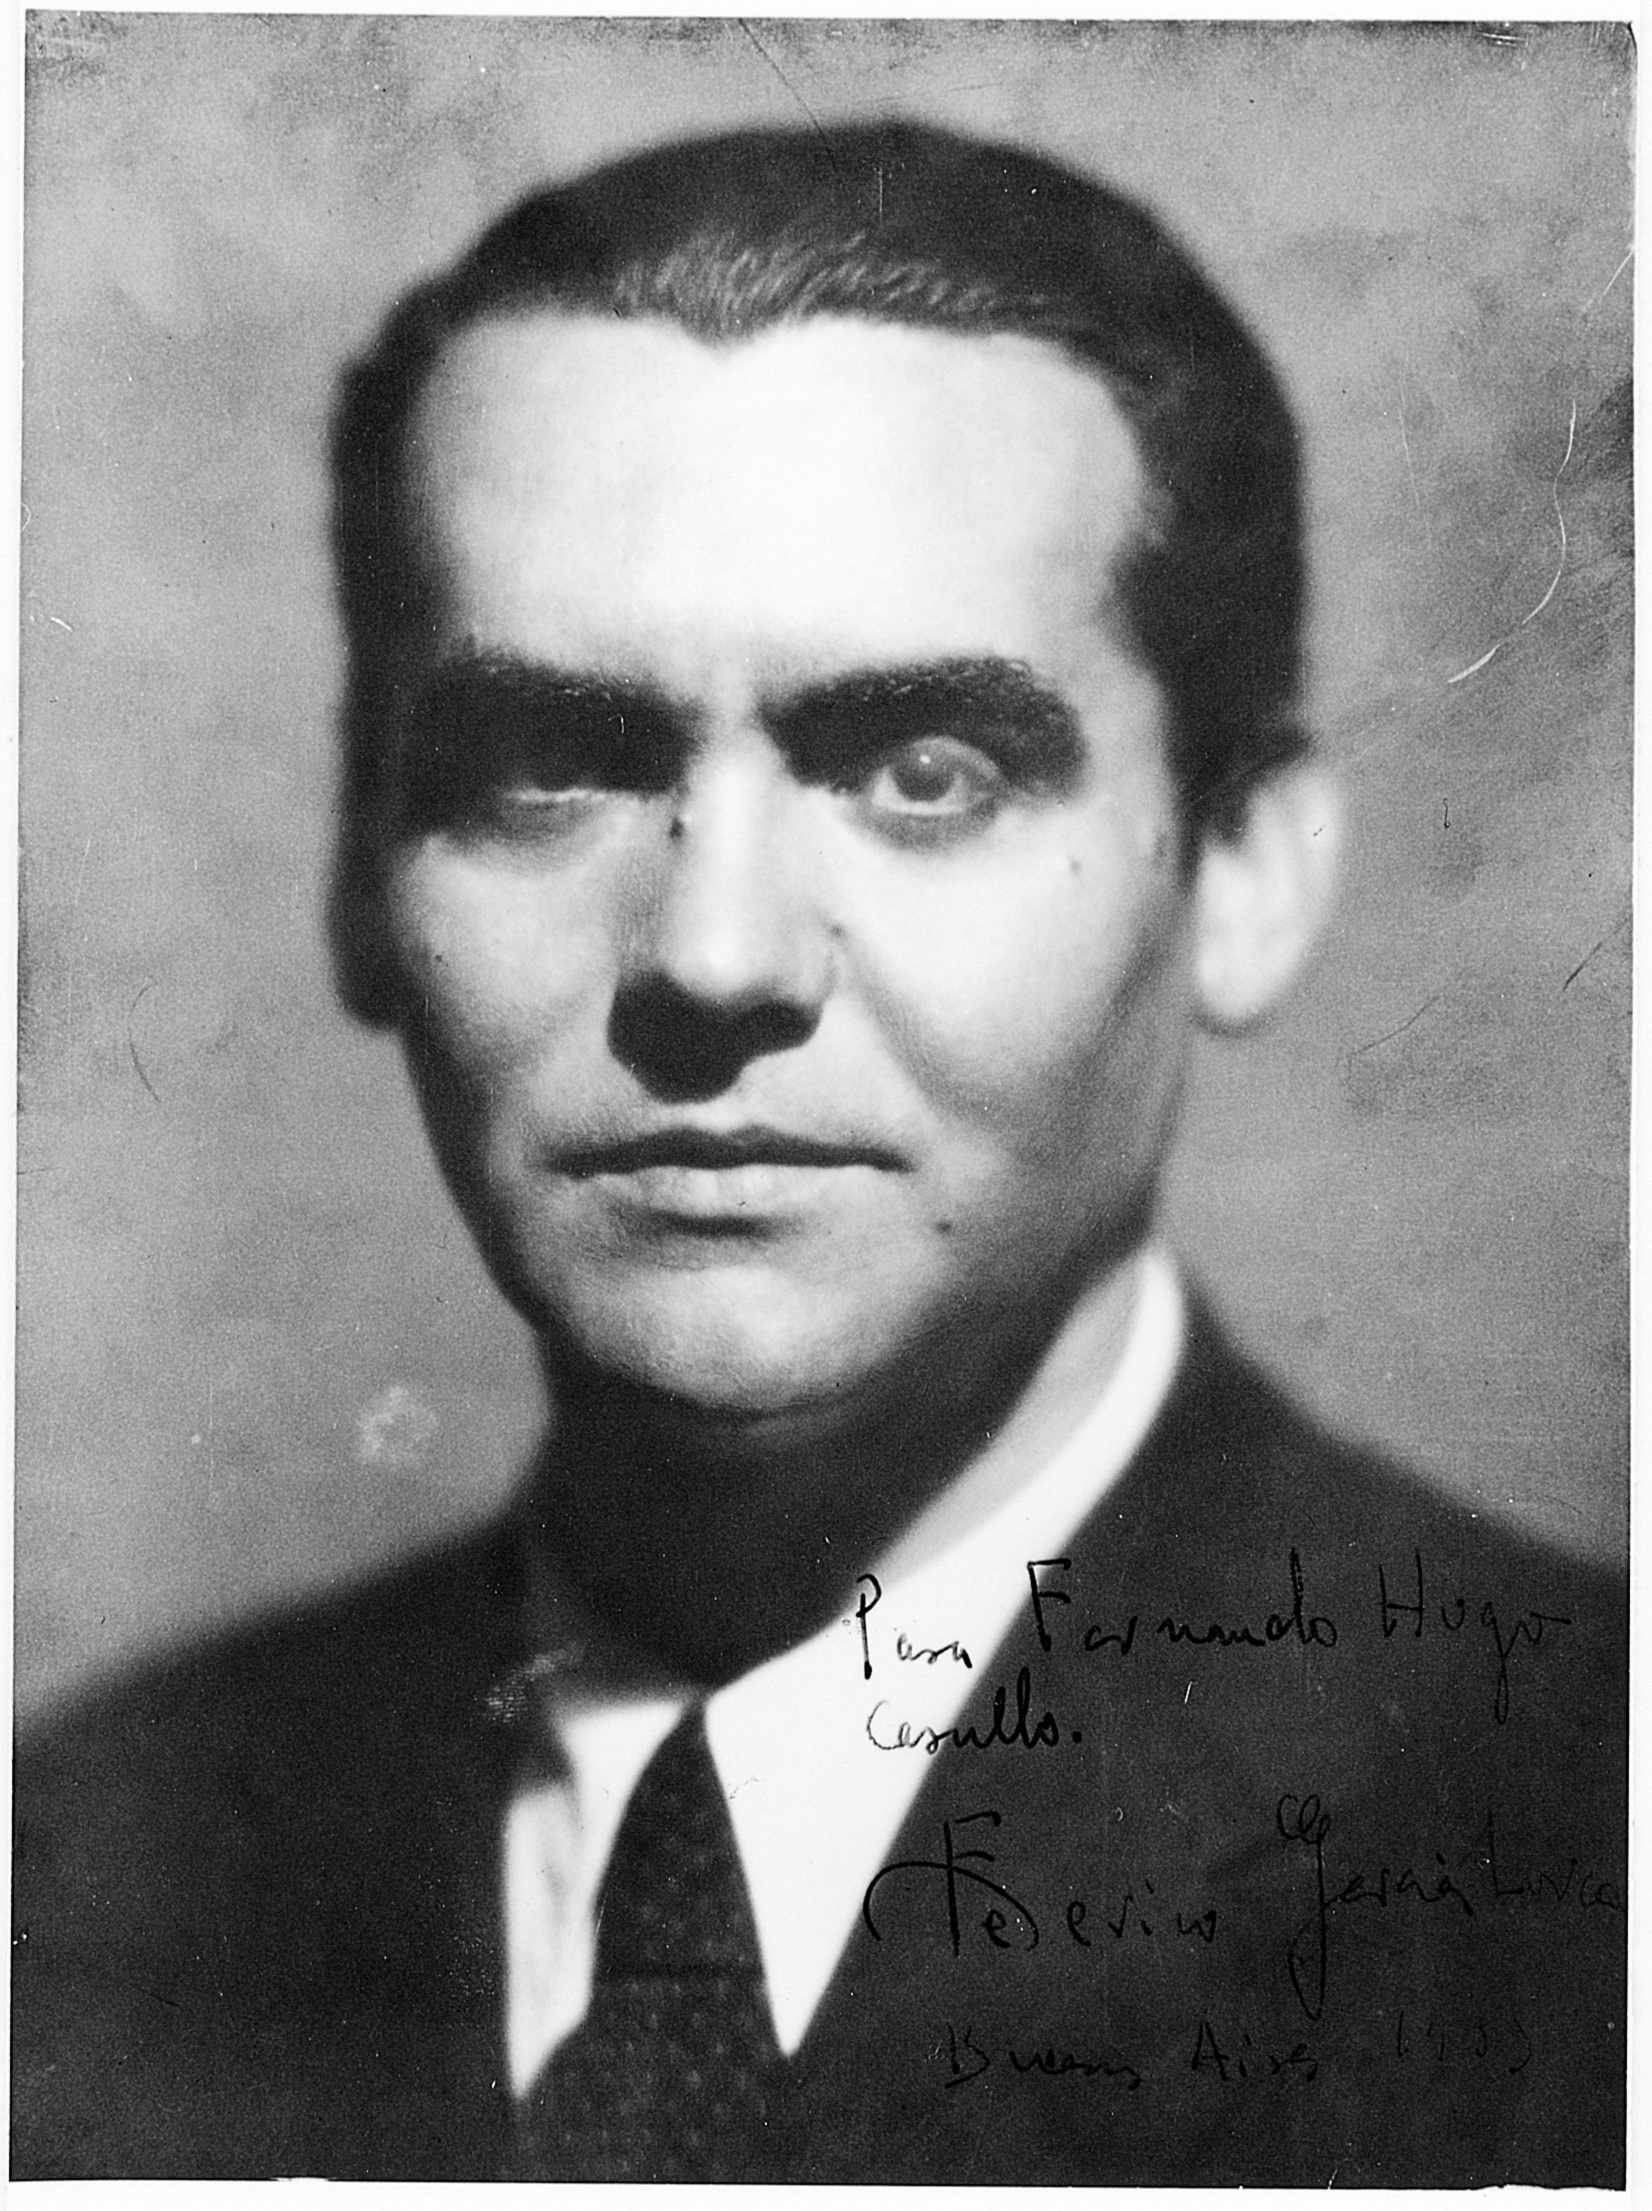 TOUCHING HEARTS: FEDERICO GARCIA LORCA - POEMS (+short